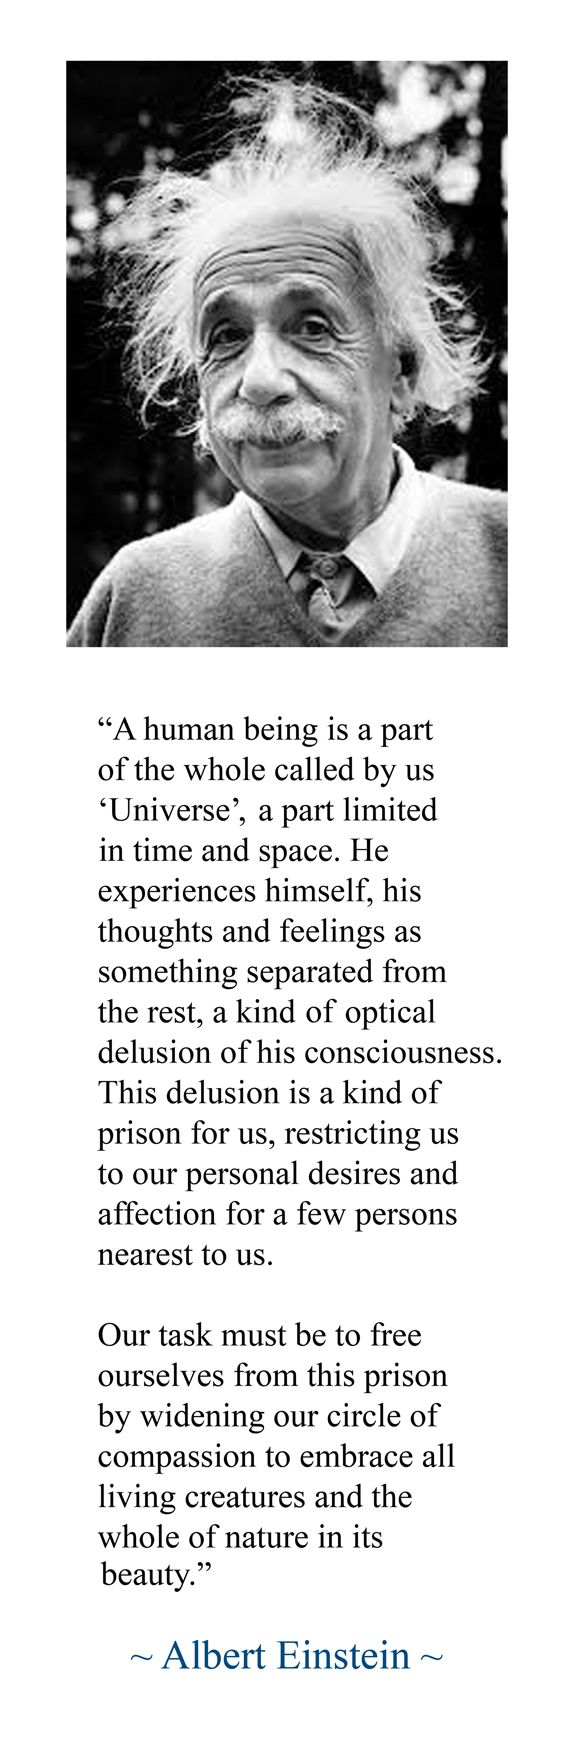 Einstein, Compassion, Reality, Perspective: